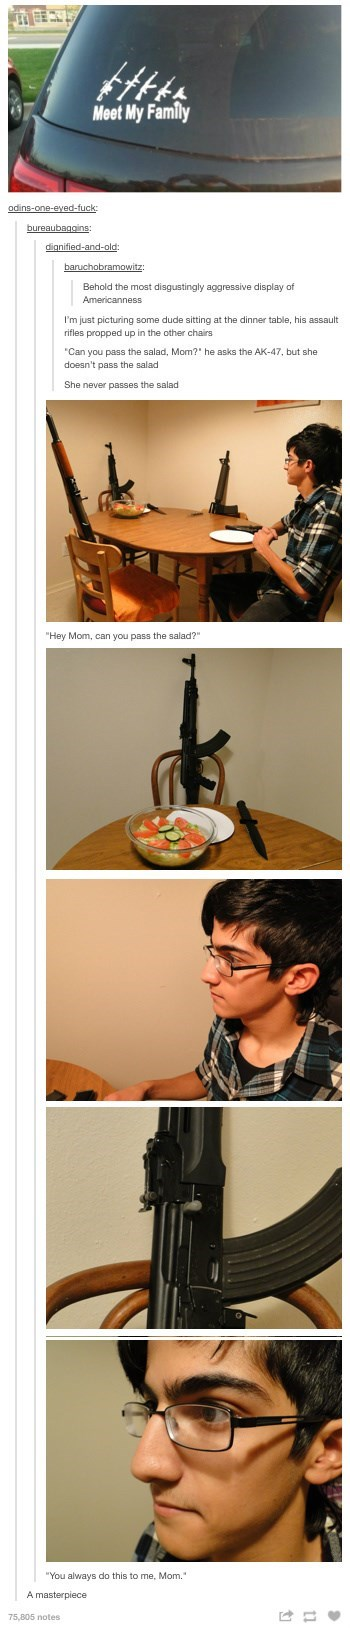 family guns tumblr weird failbook g rated - 8355343872